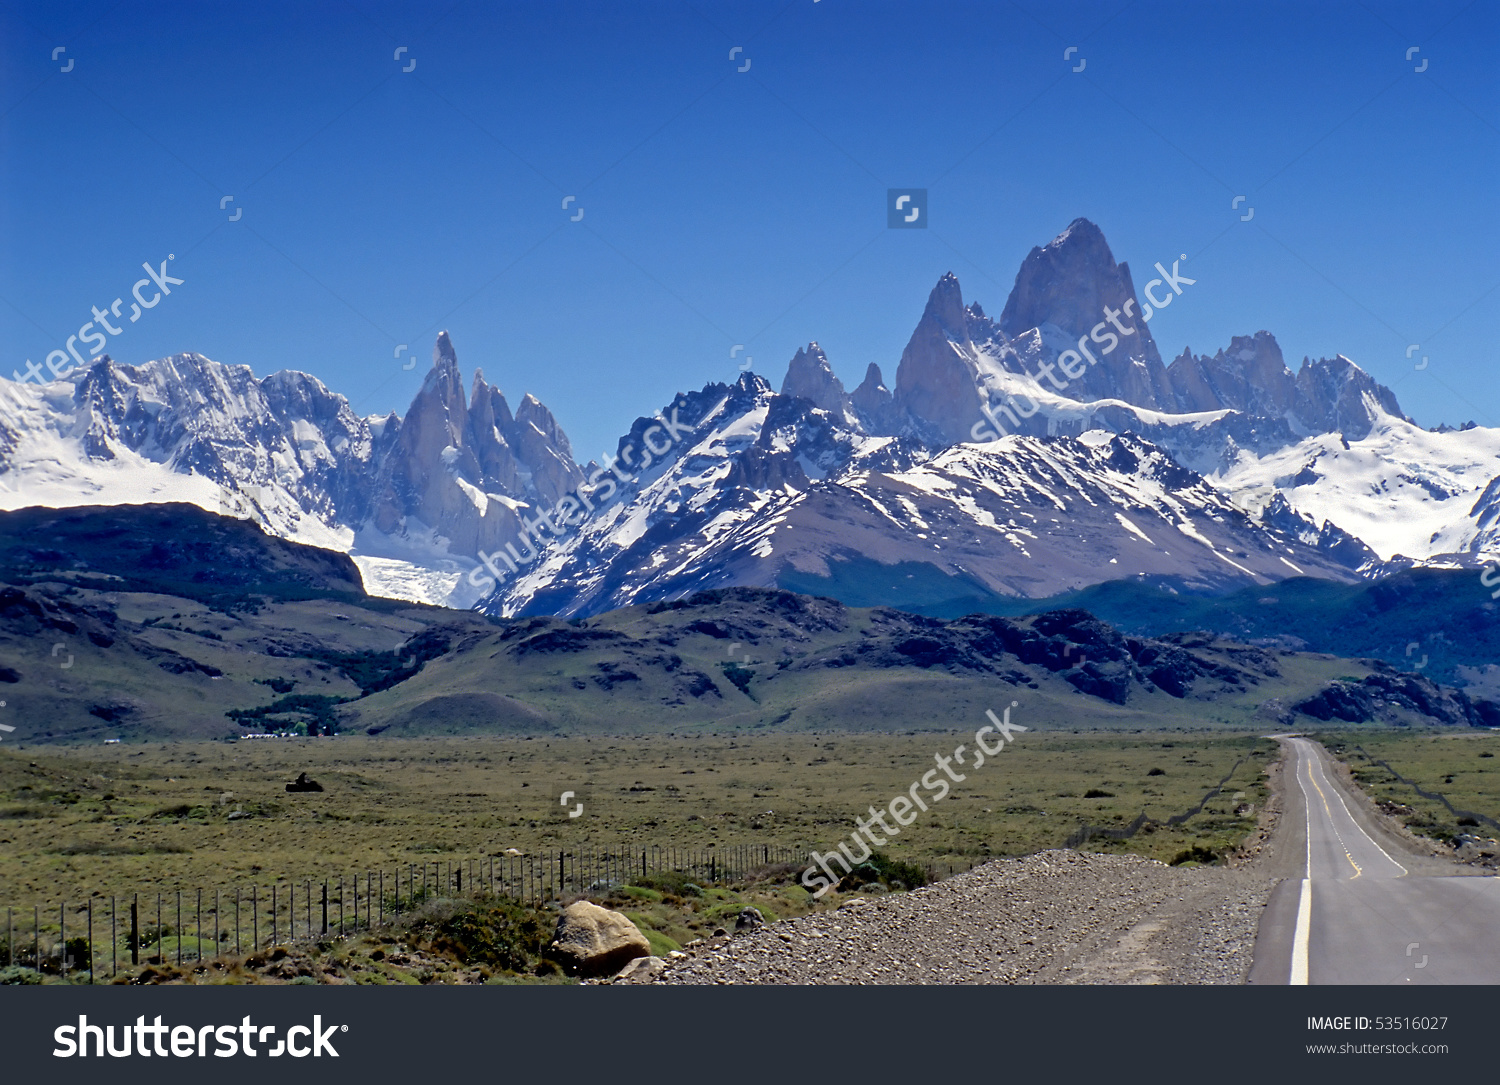 Cerro Torre clipart #2, Download drawings